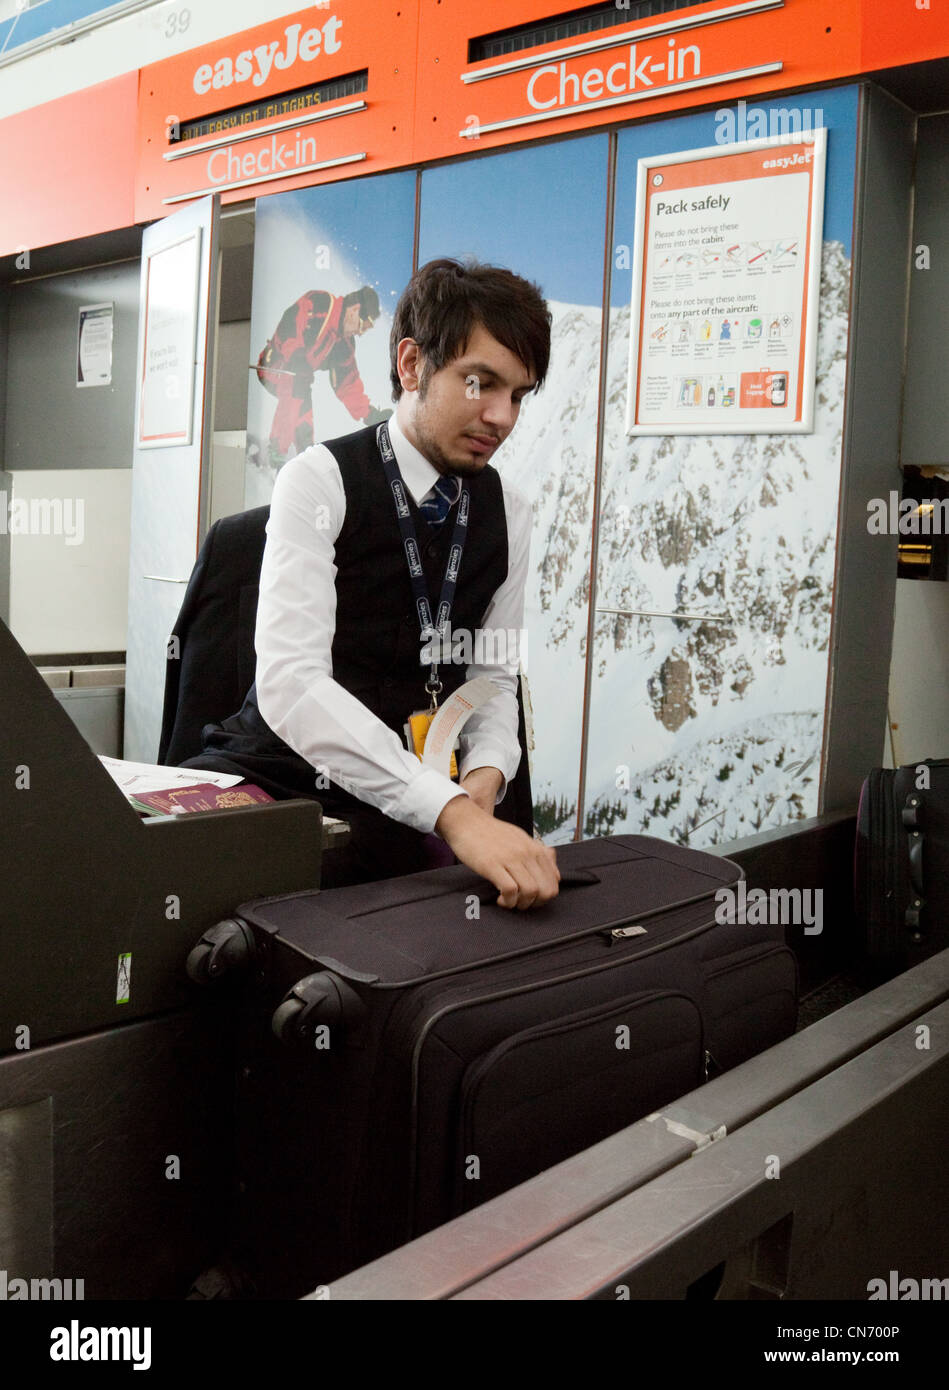 Easyjet baggage check in staff at Stansted Airport Essex UK - Stock Image